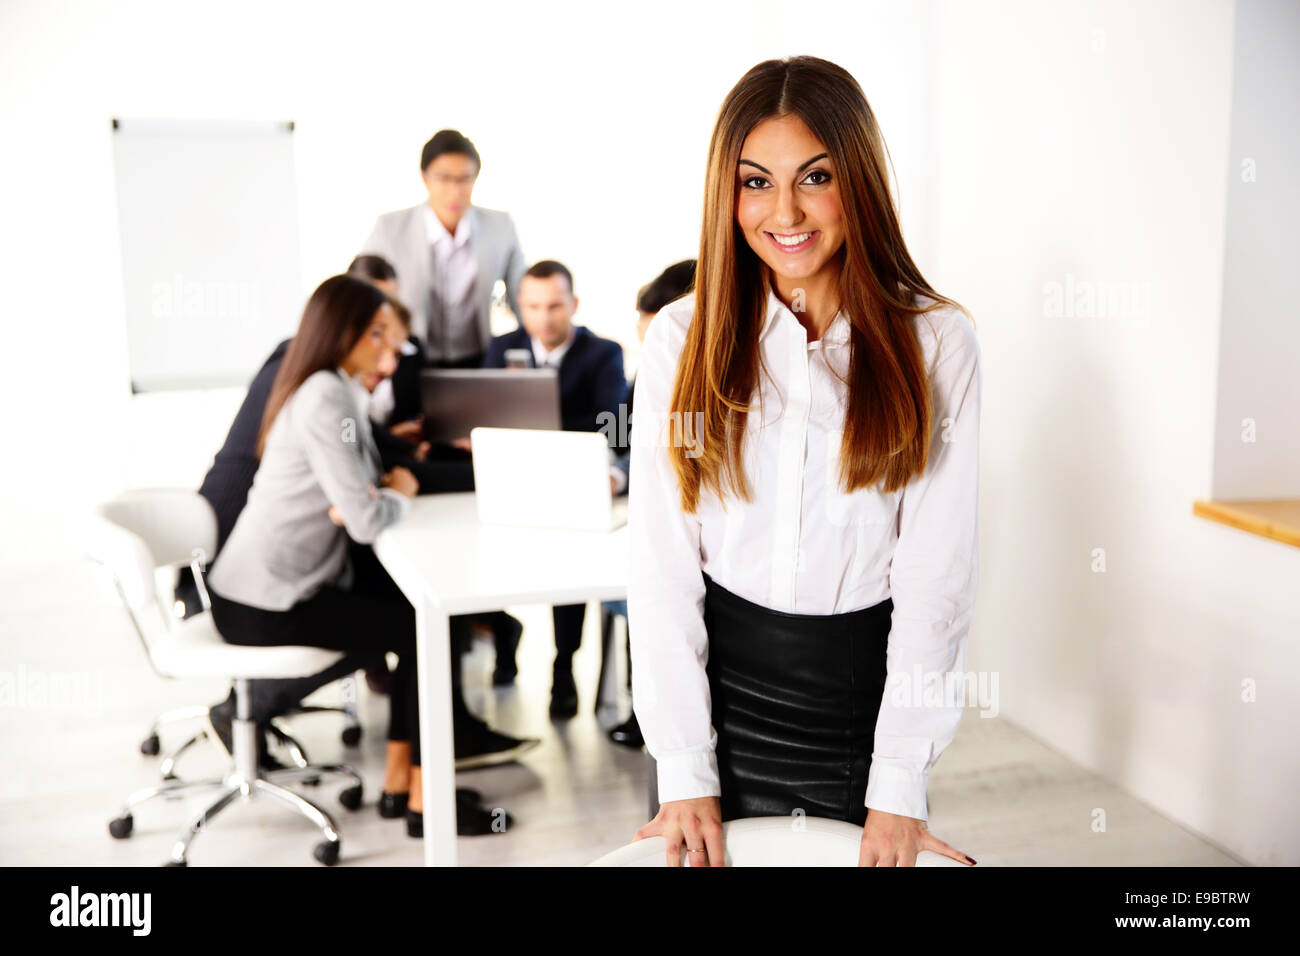 Portrait of a happy businesswoman in front of business meeting Photo Stock